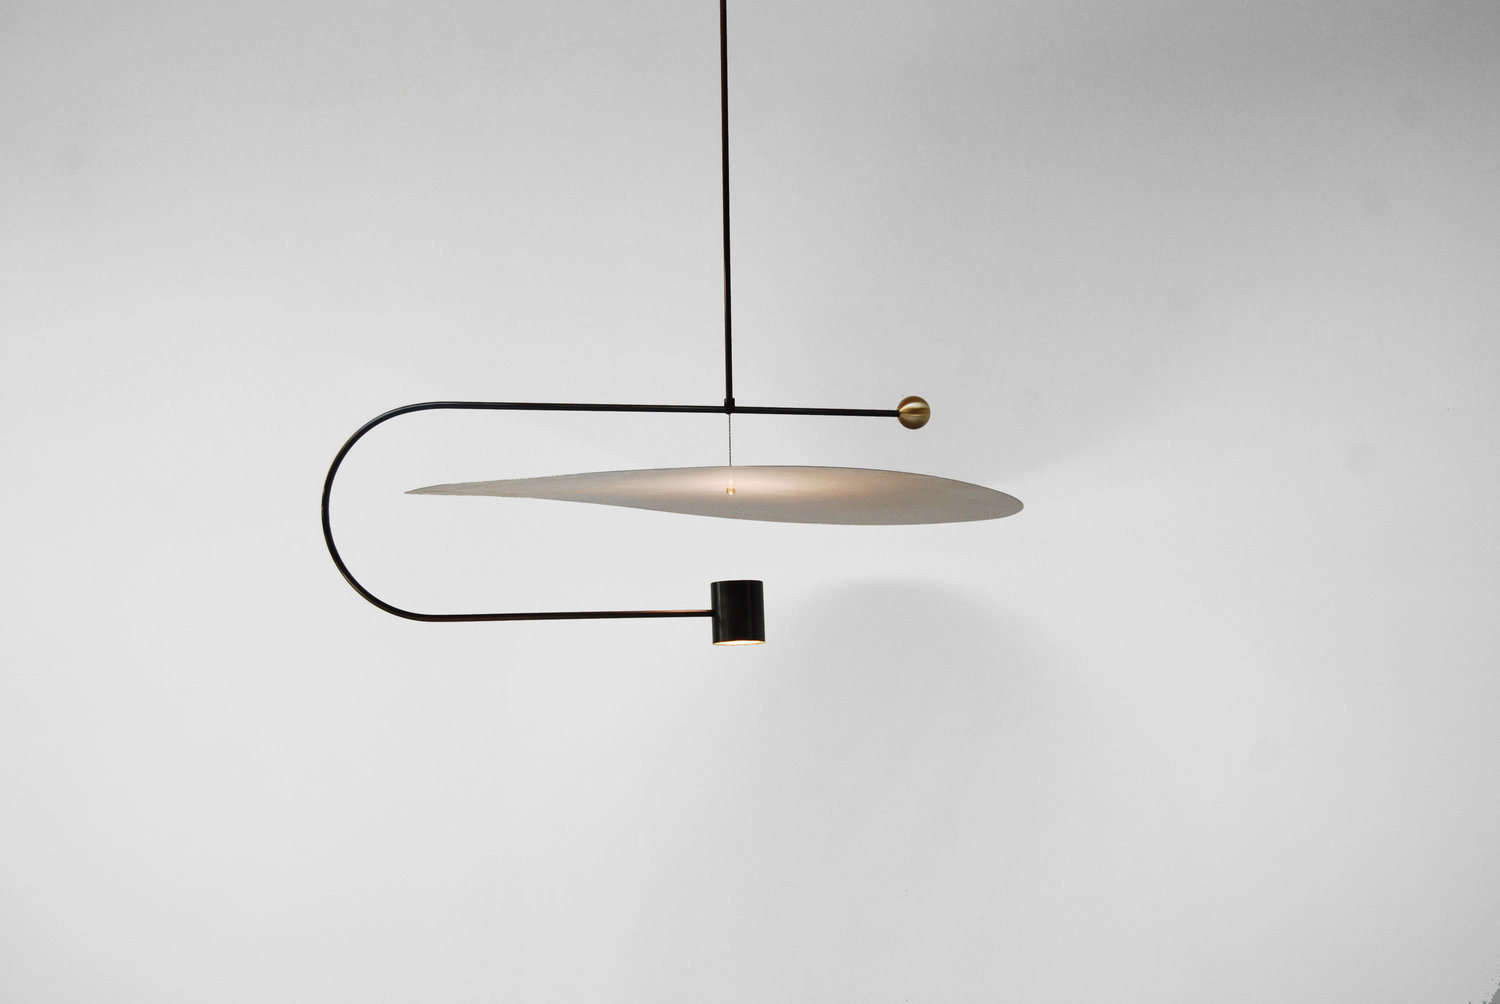 Babies arent the only ones mesmerized by mobiles of late weve been admiring sculptural pendant lights that take inspiration from calder and in many cases